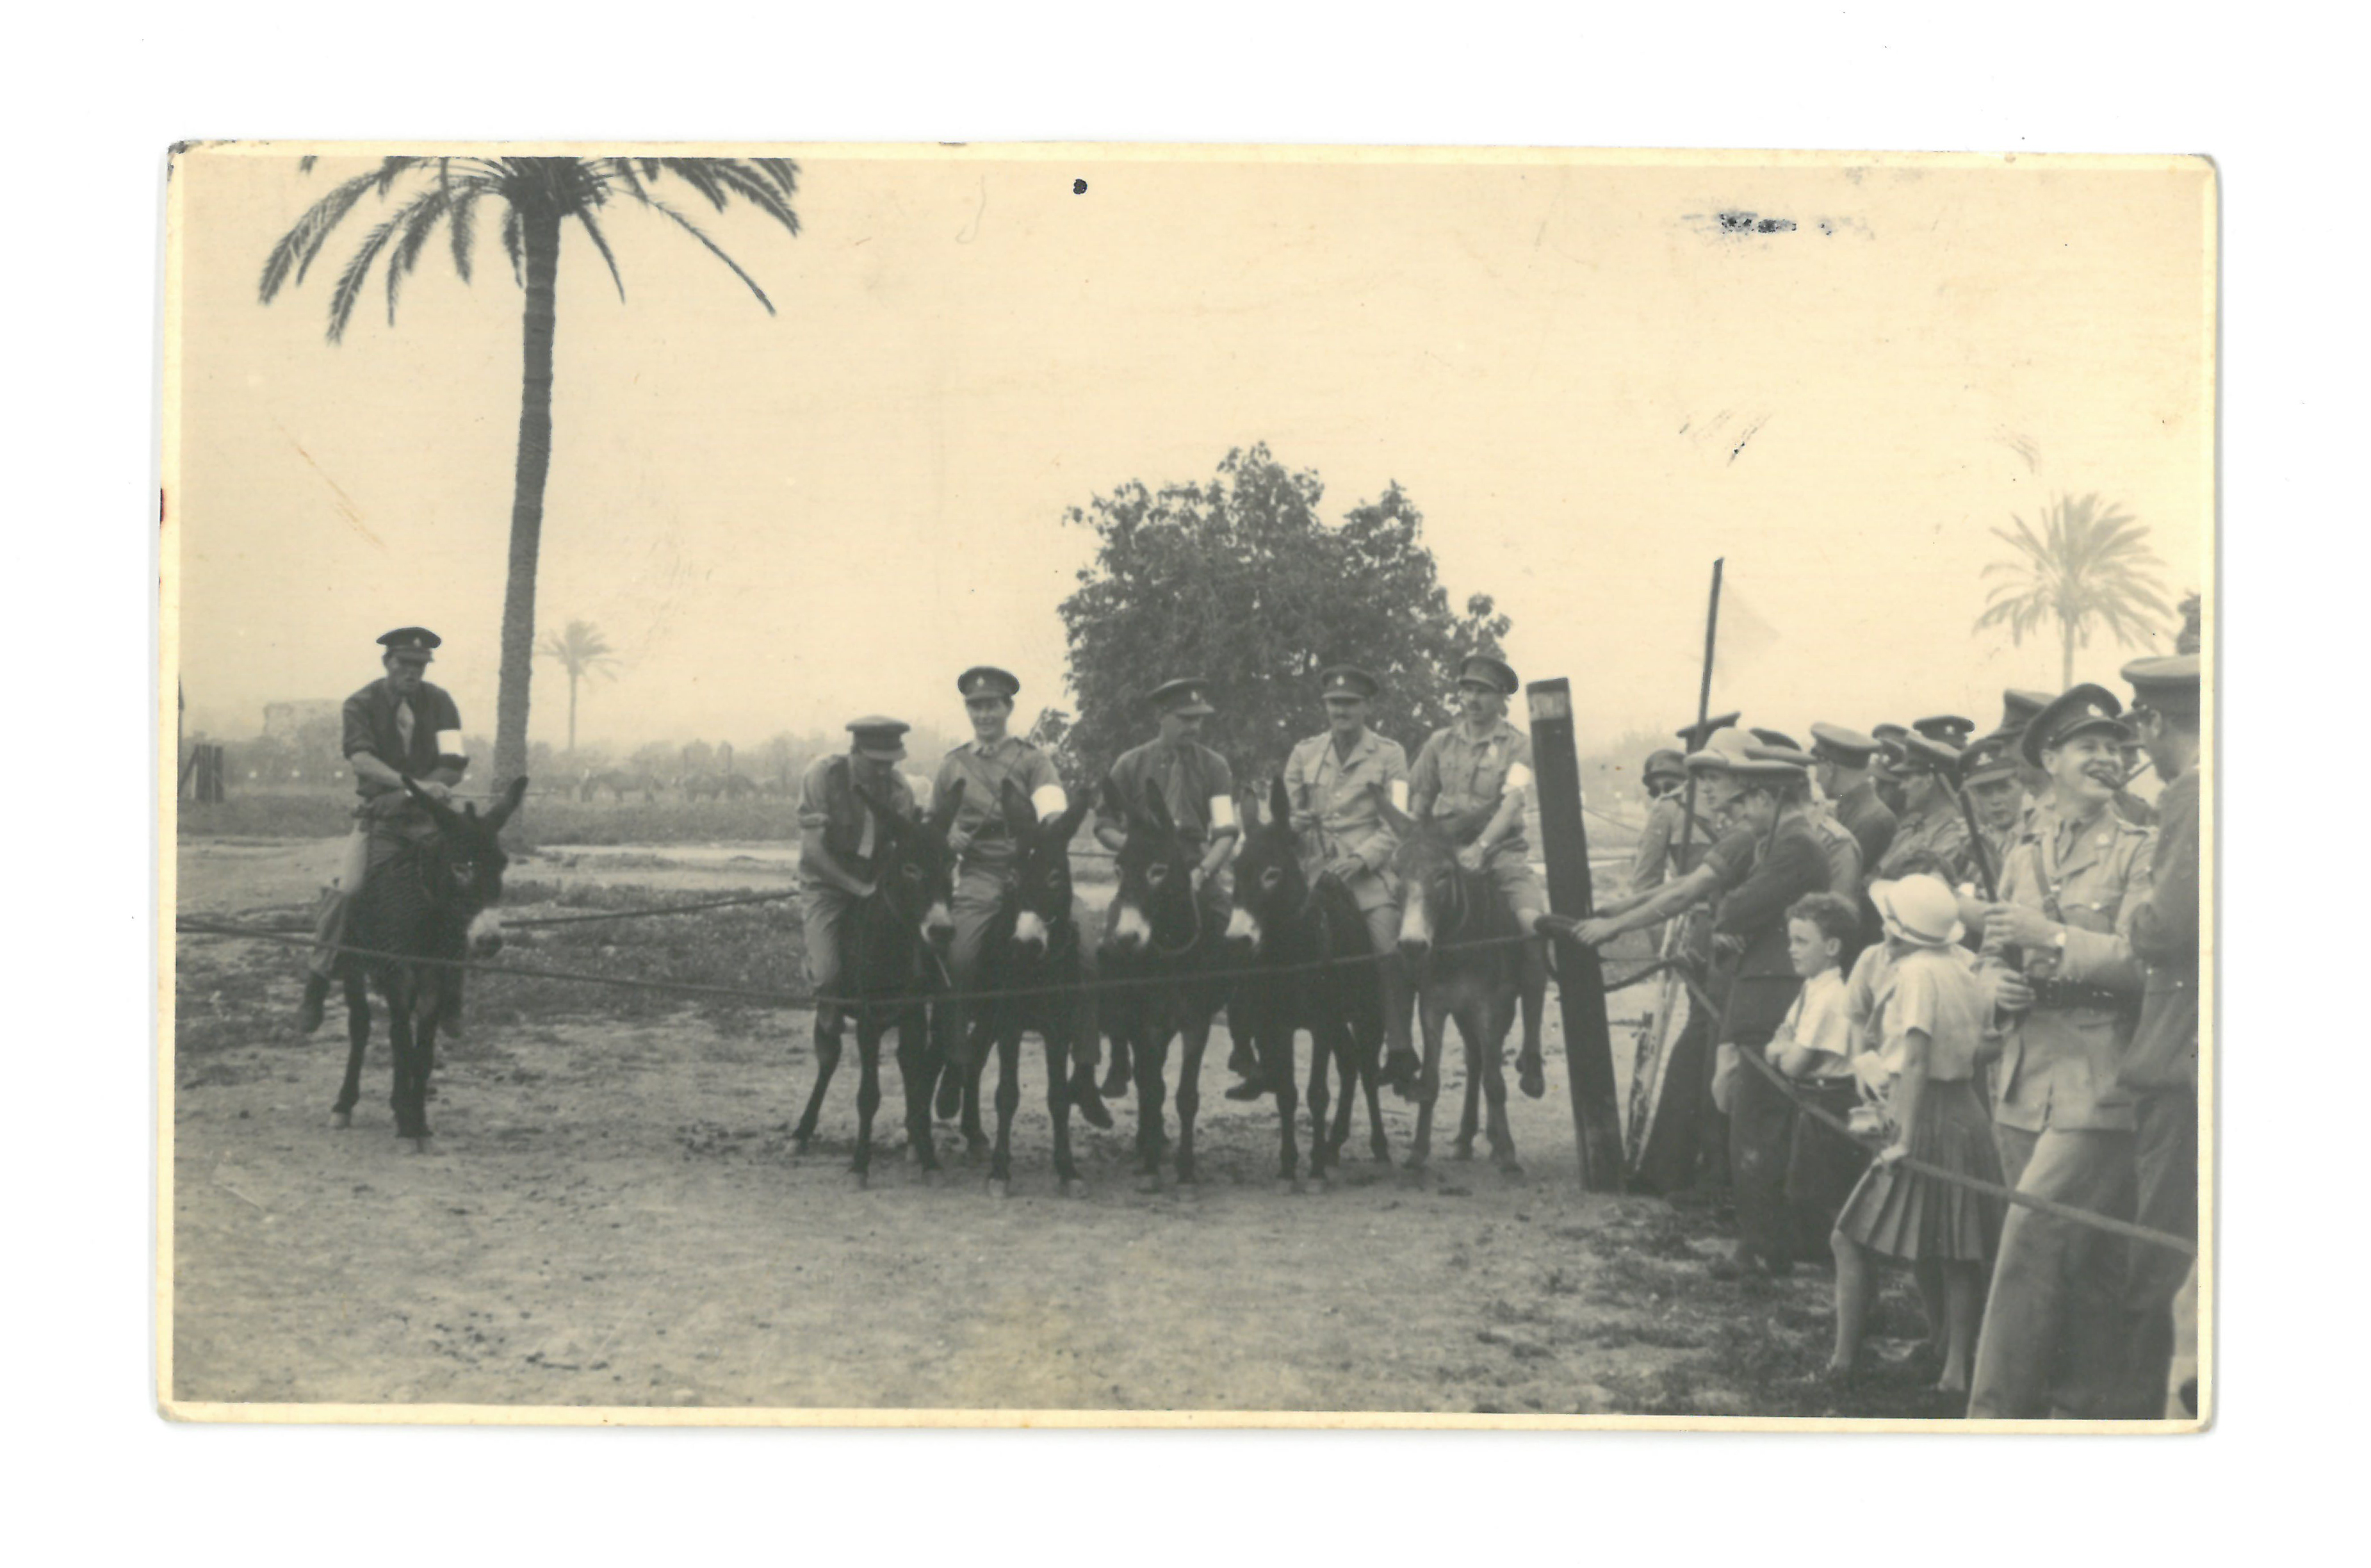 Soldiers of the Jewish Brigade, Donkey Derby, Zion Mule Corp